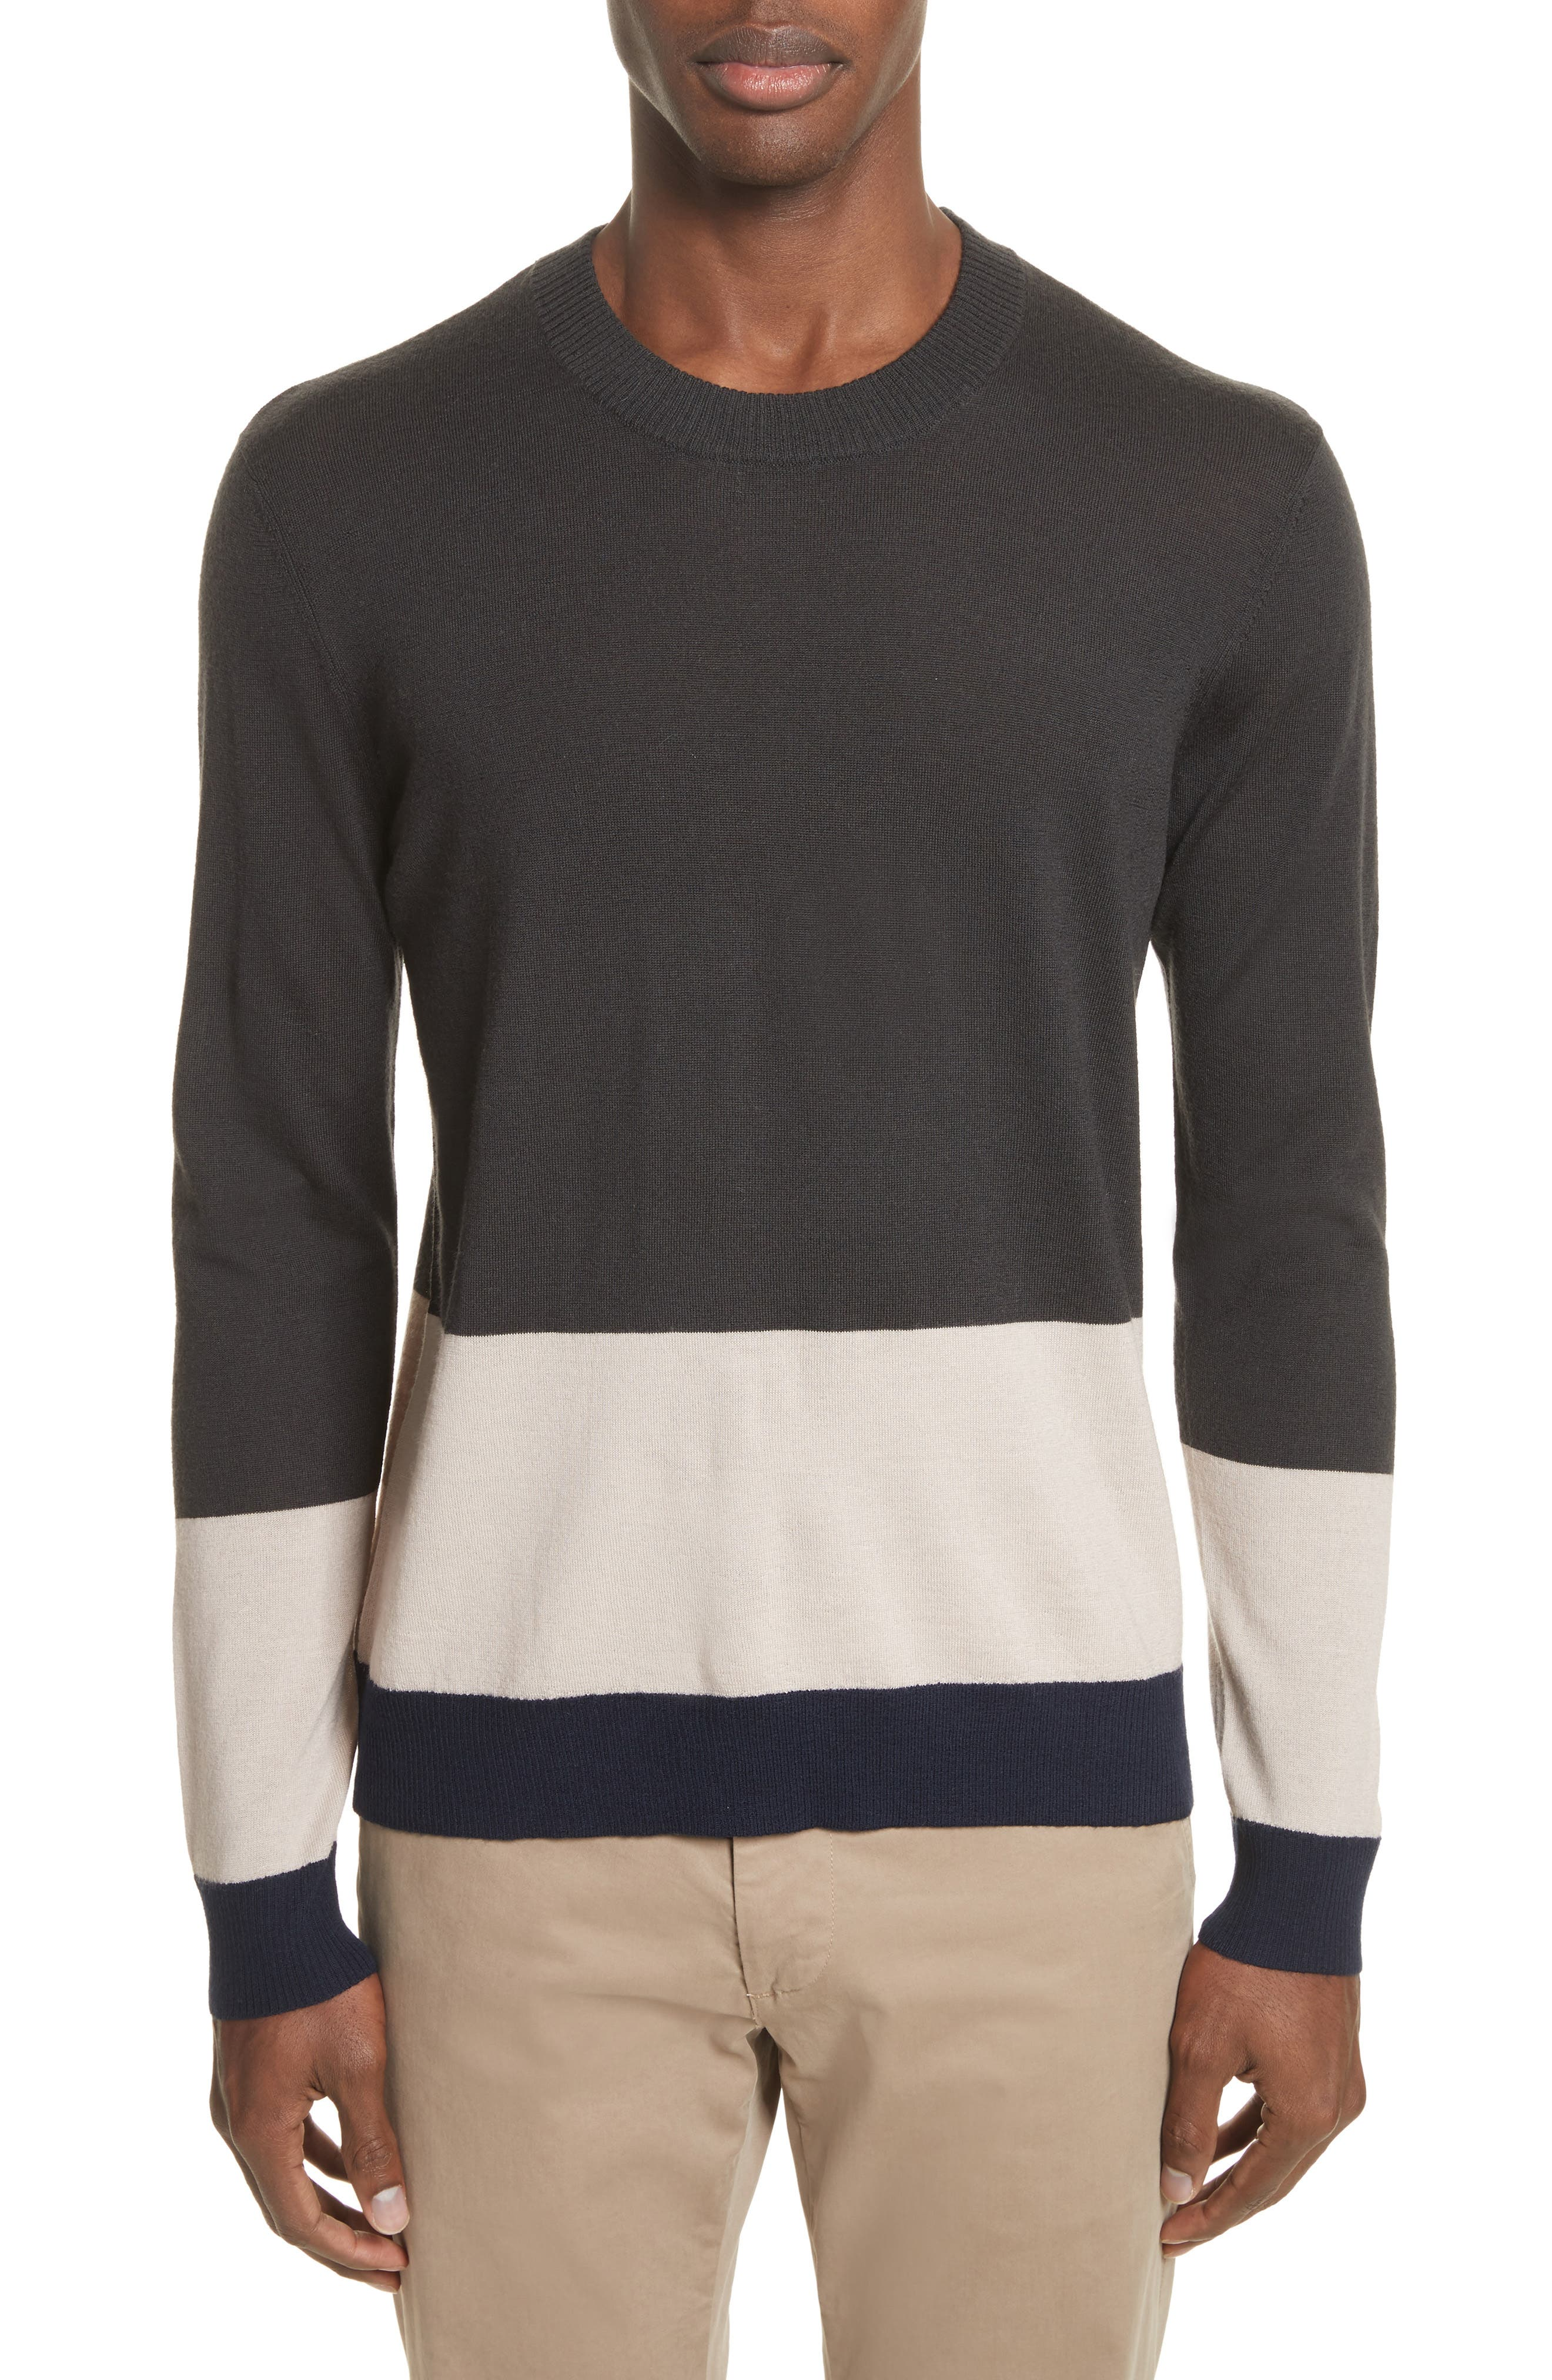 Colorblock Merino Wool Sweater,                             Main thumbnail 1, color,                             Beige/ Slate/ Midnight